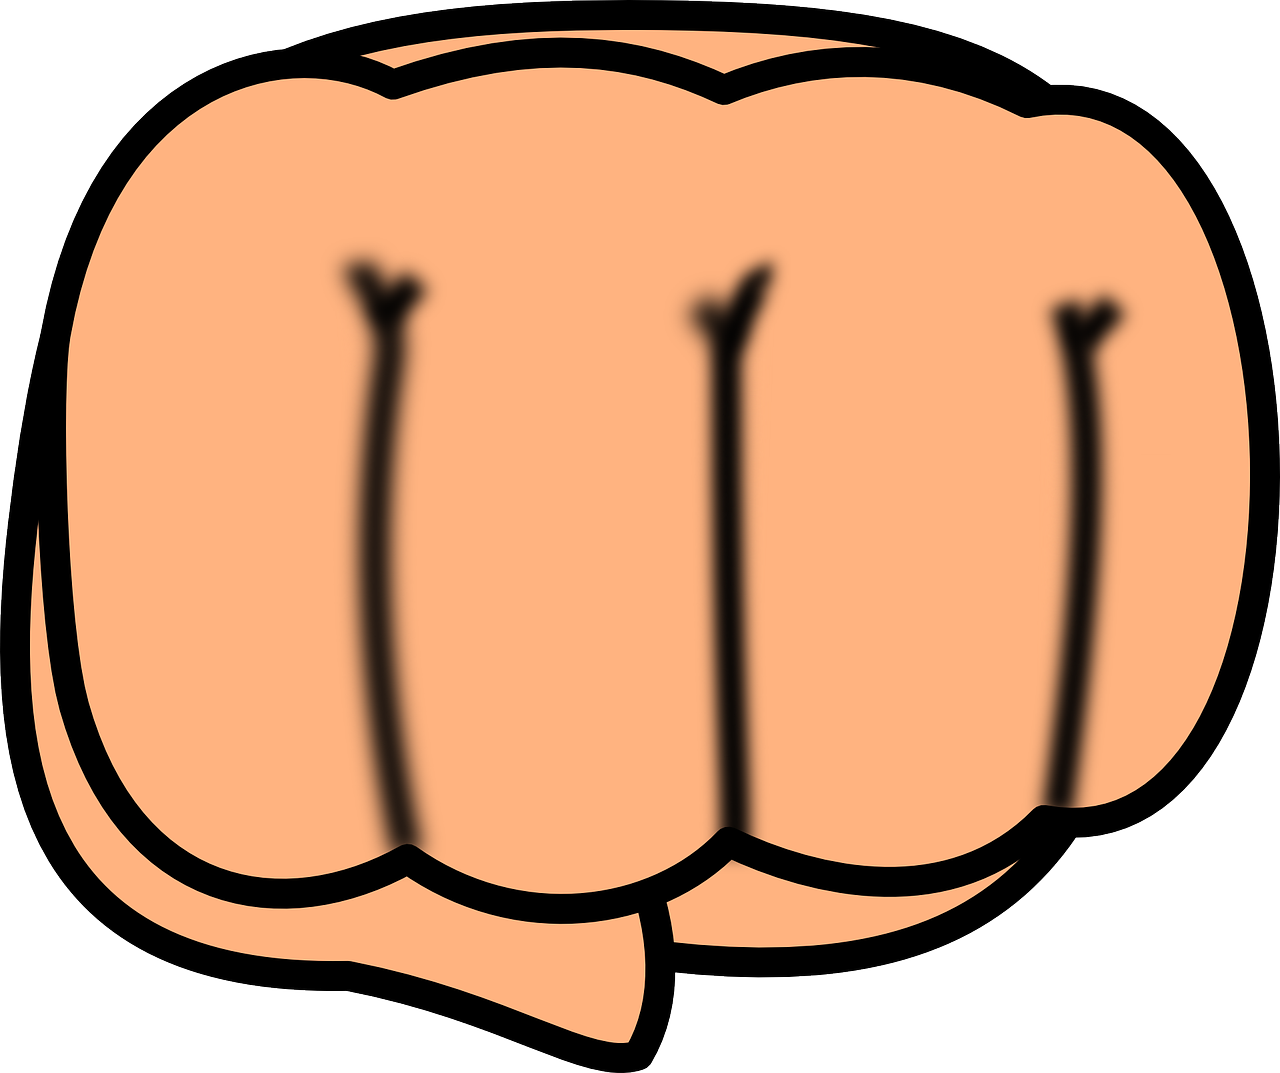 hand fist punch free photo